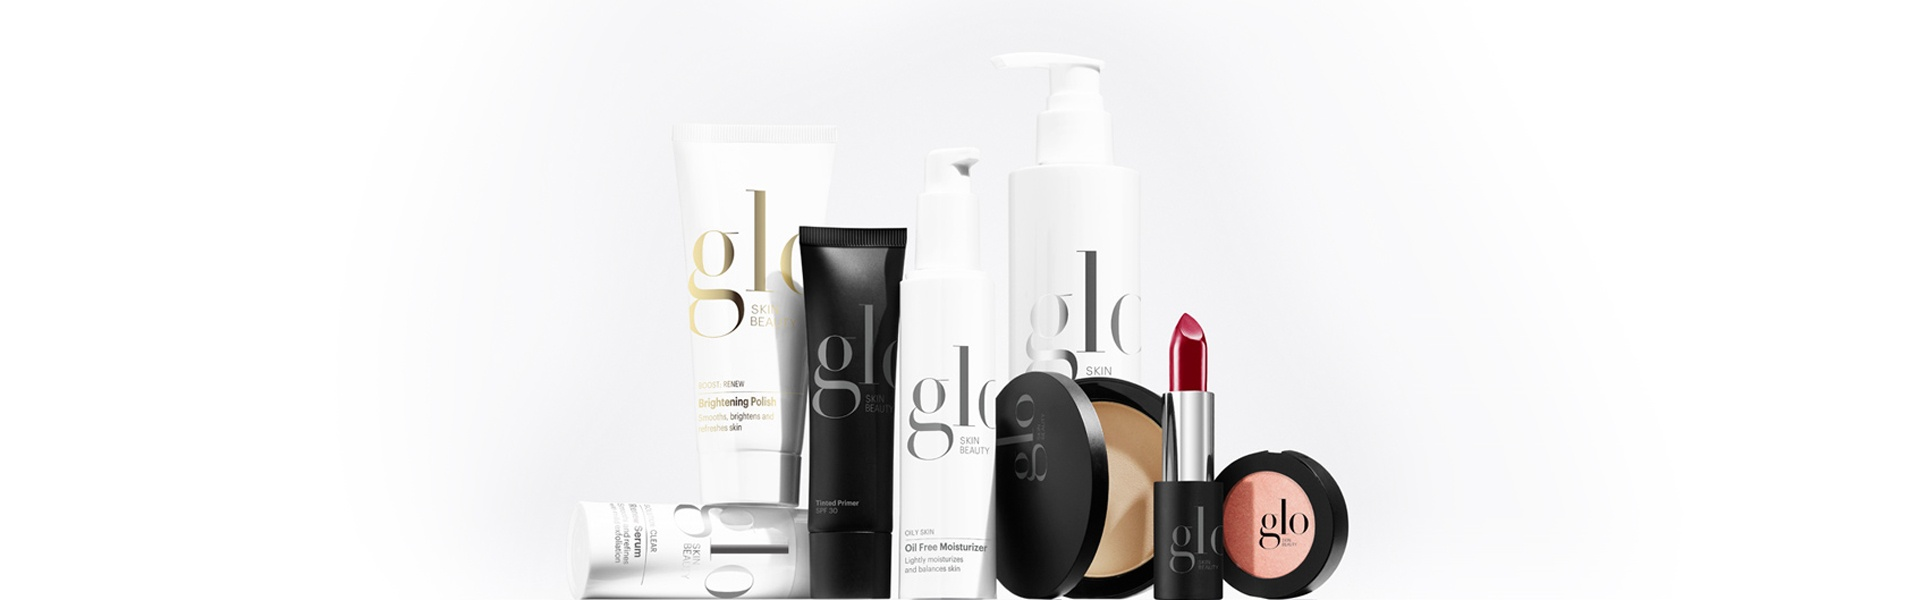 GLO Skin Beaty Professional Skincare & Mineral Makeup Plano Frisco Dallas Allen McKinney Addison TX DFW AALAM THe Salon LUXBAR by AALAM